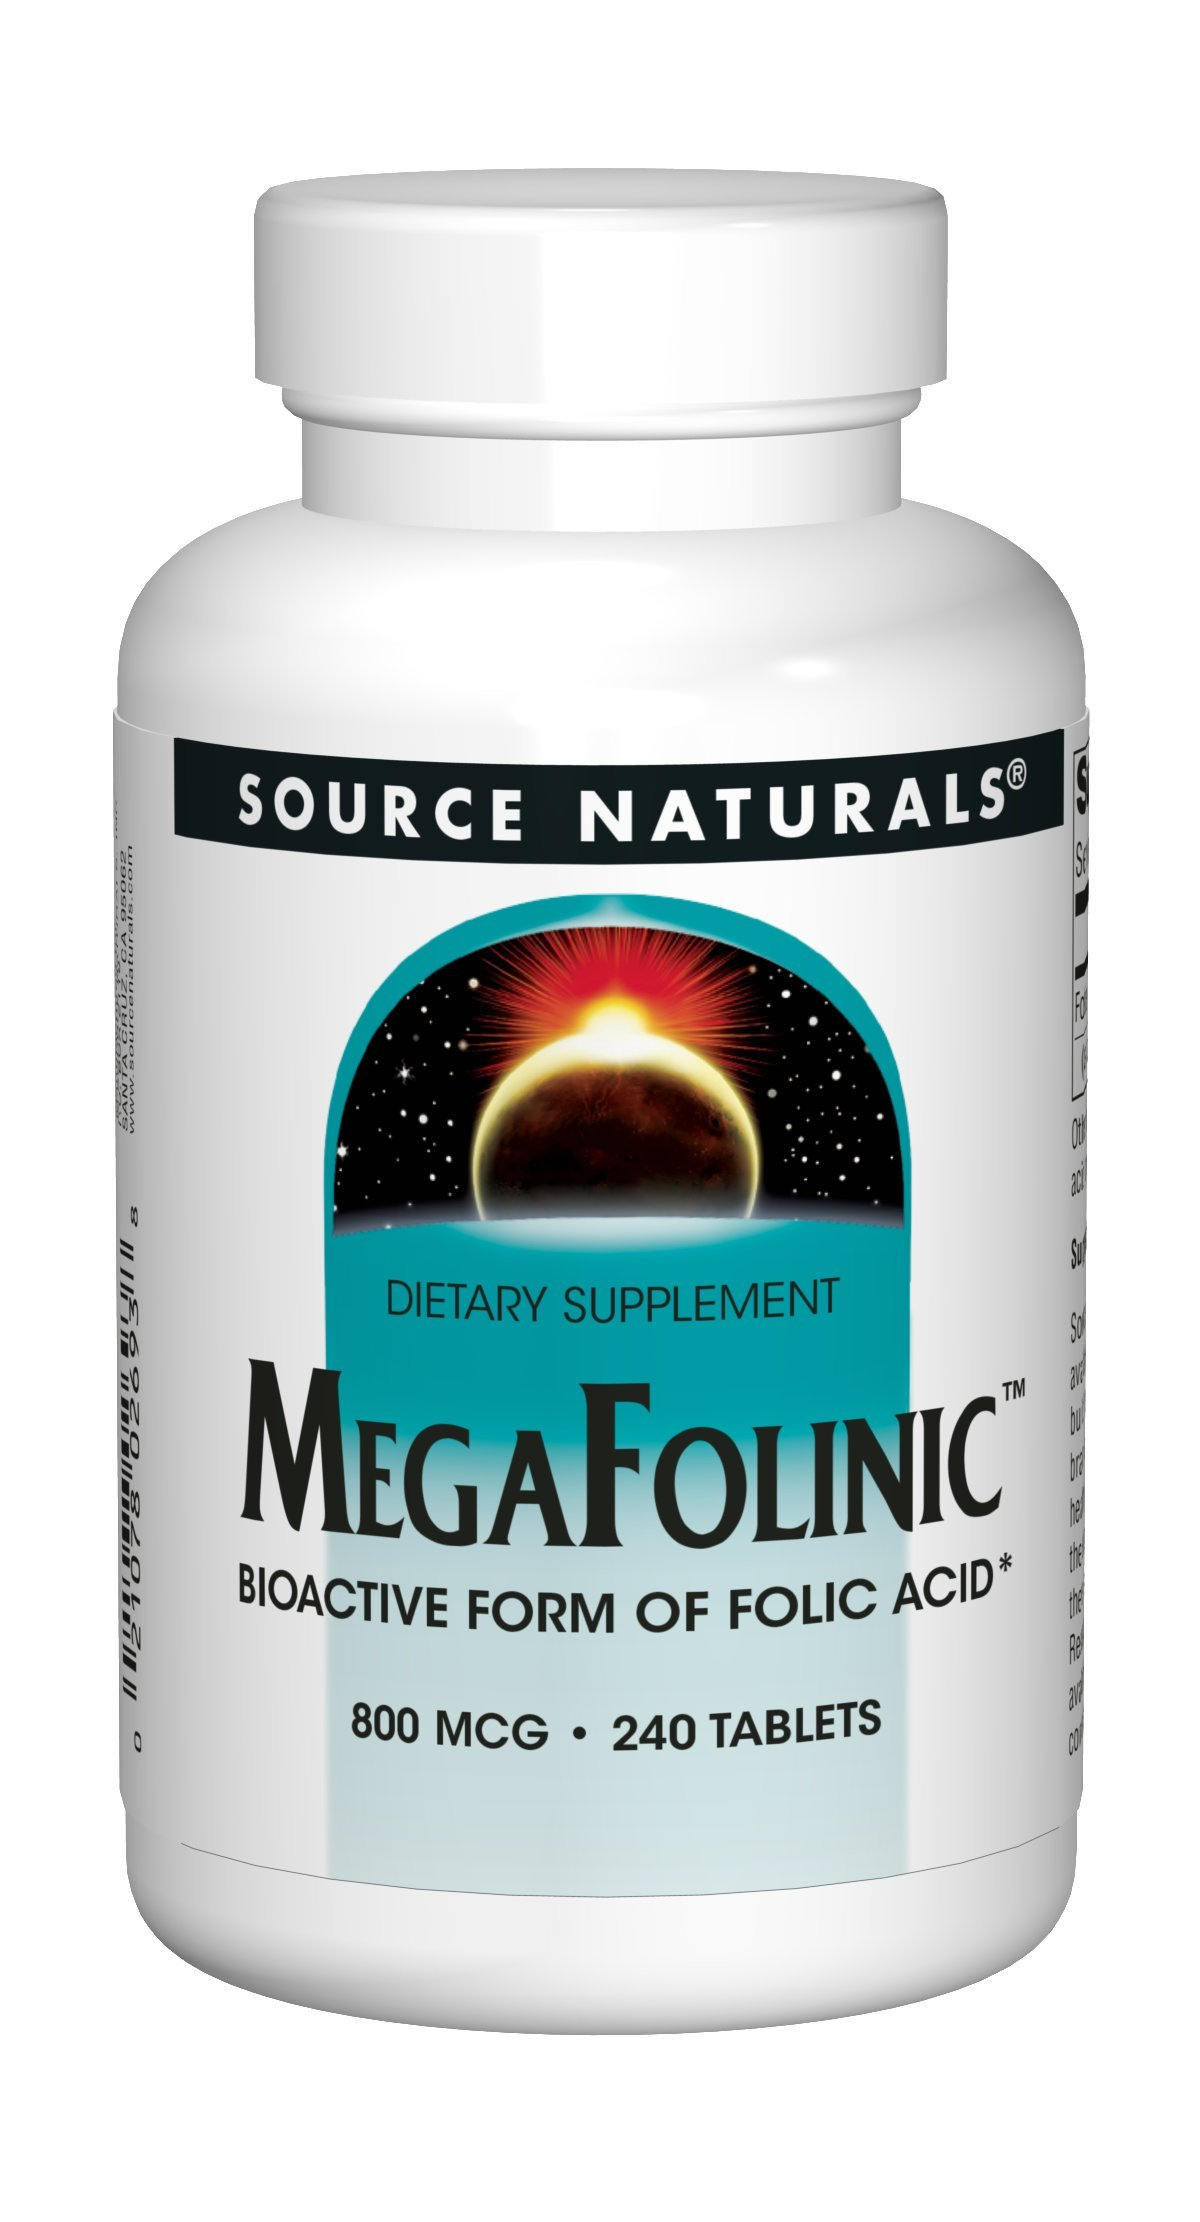 Source Naturals MegaFolinic 800mcg - 240 Tablets